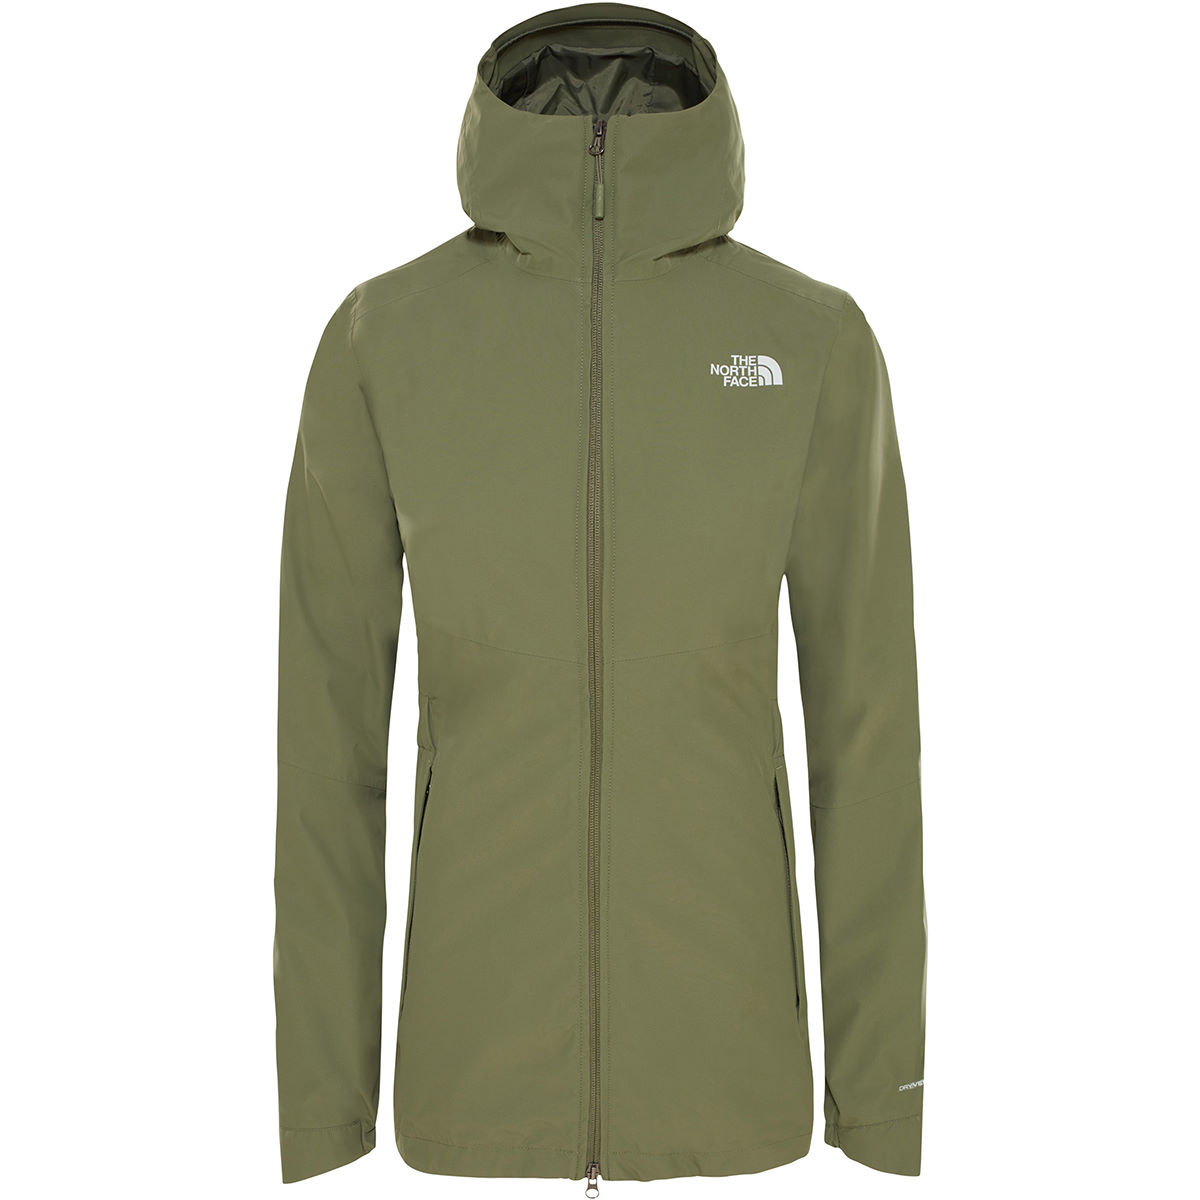 The North Face The North Face Womens Hikesteller Parka Shell Jacket   Jackets